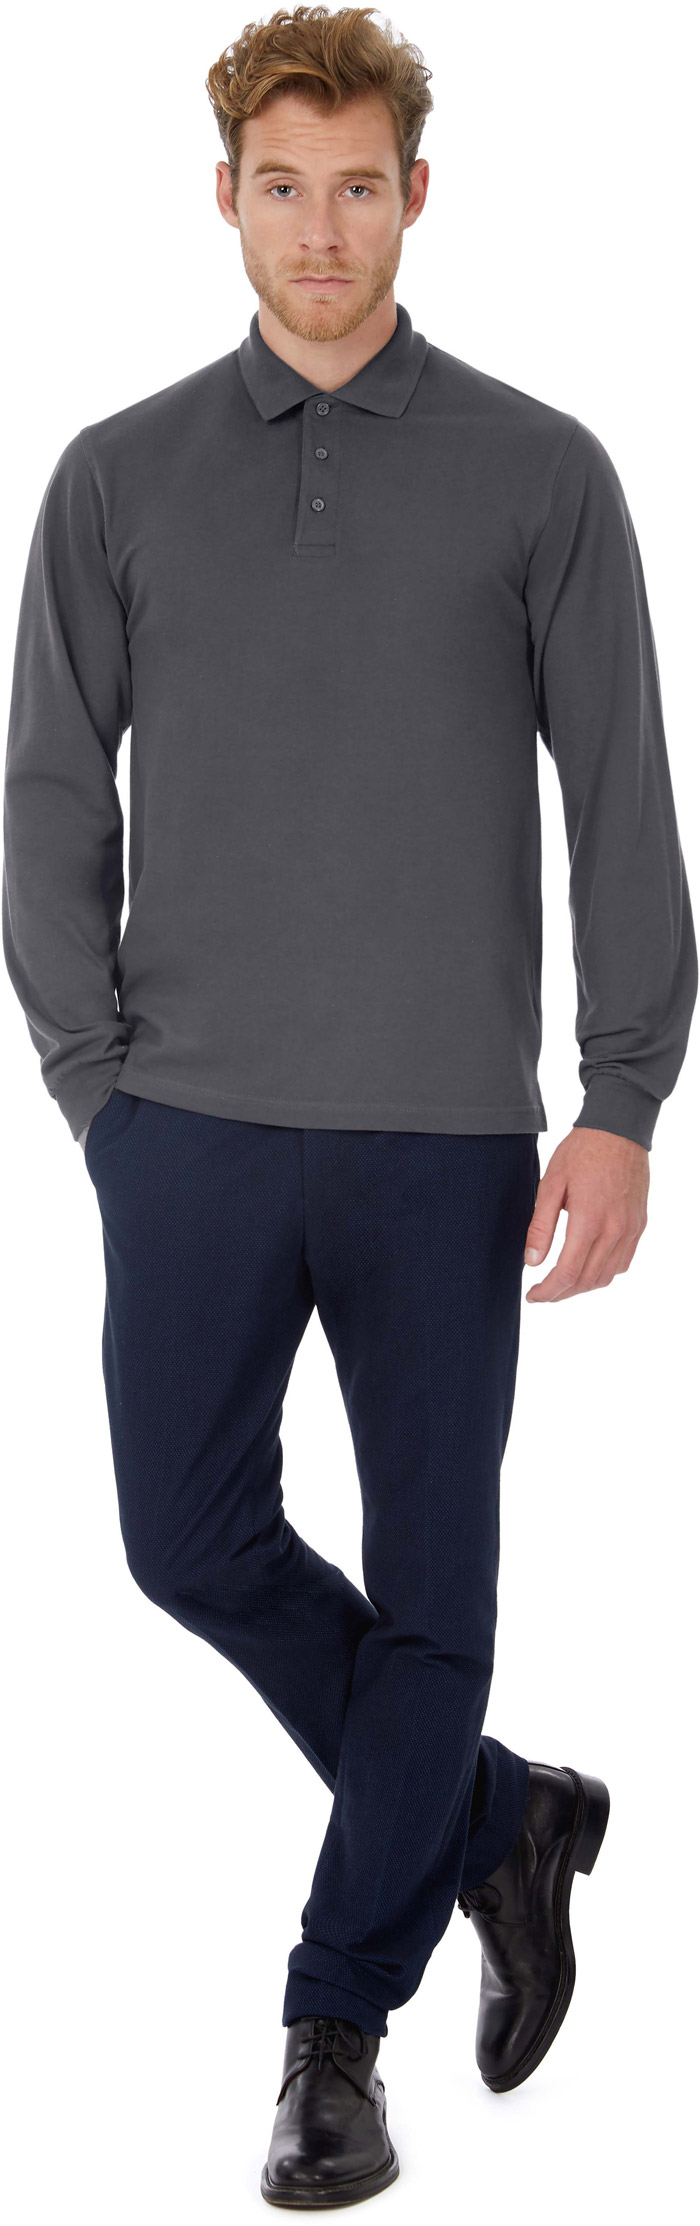 Polo homme manches longues heavymill - CGHEAML